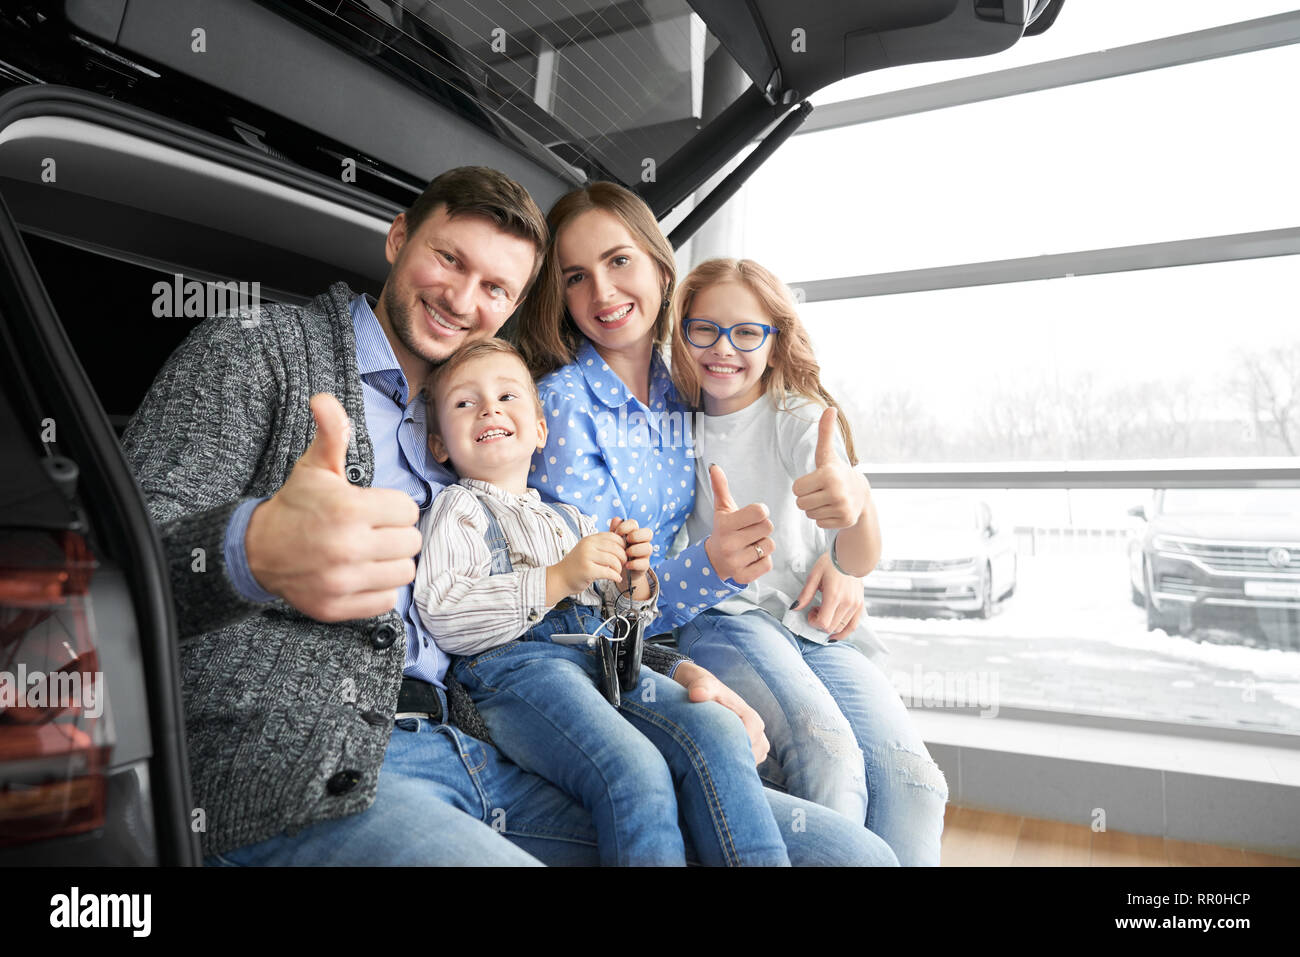 Happy family of mother, father, son and daughter sitting in trunk of new automobile. Potential buyers of vehicle. Parents and children looking at camera, smiling and showing thumbs up. - Stock Image